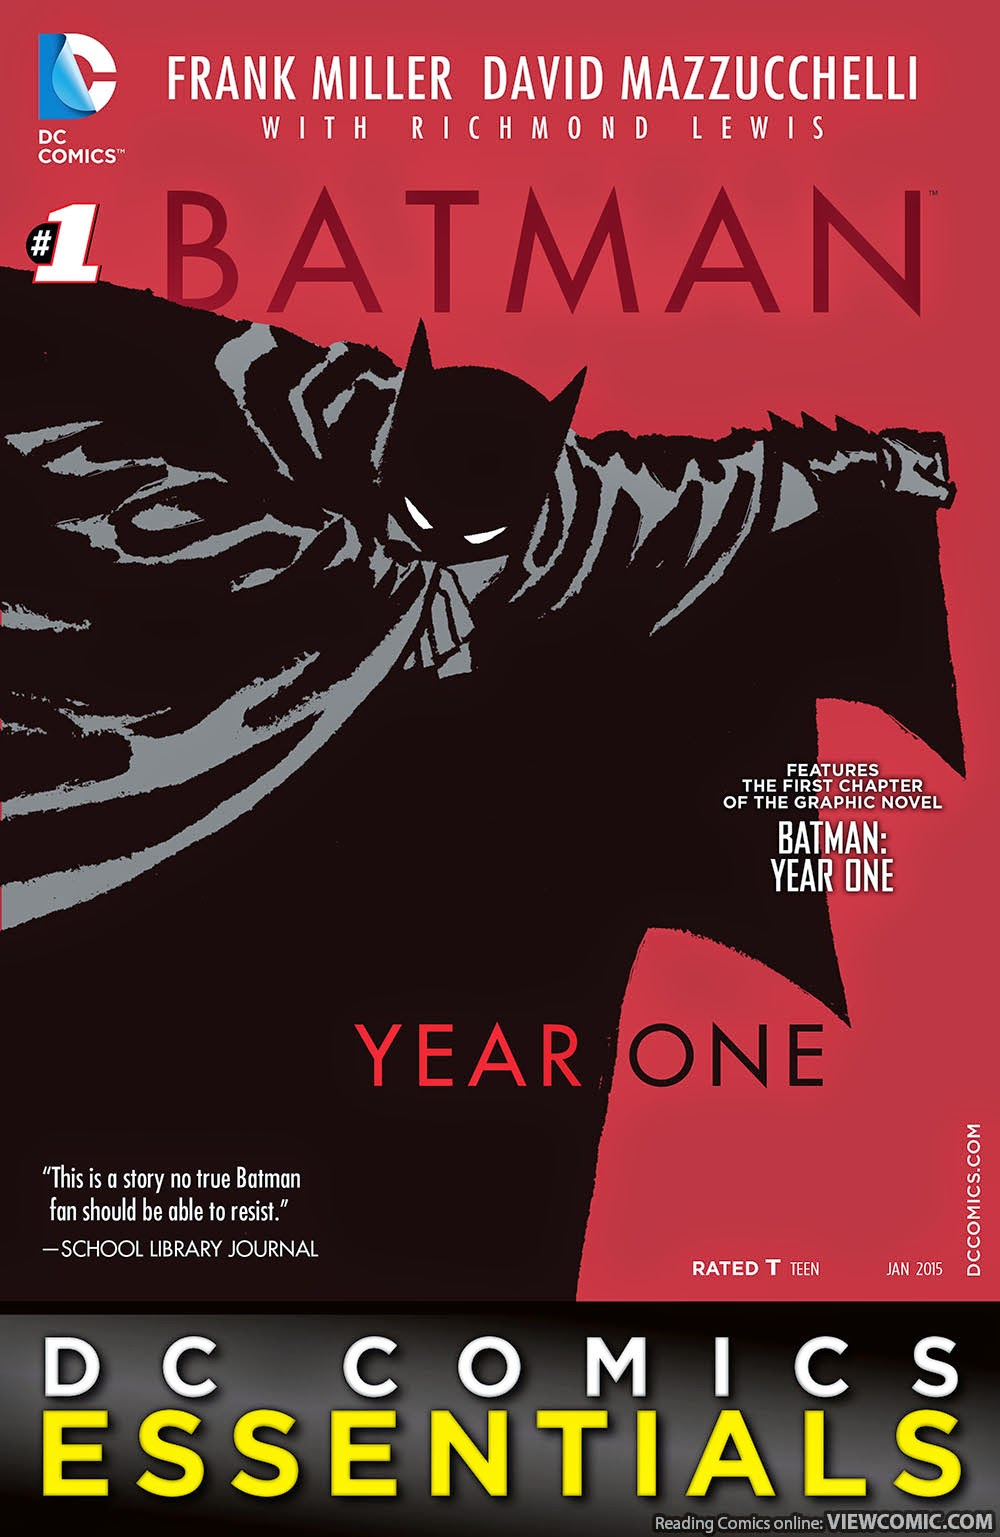 dc comics essentials batman year one viewcomic reading comics